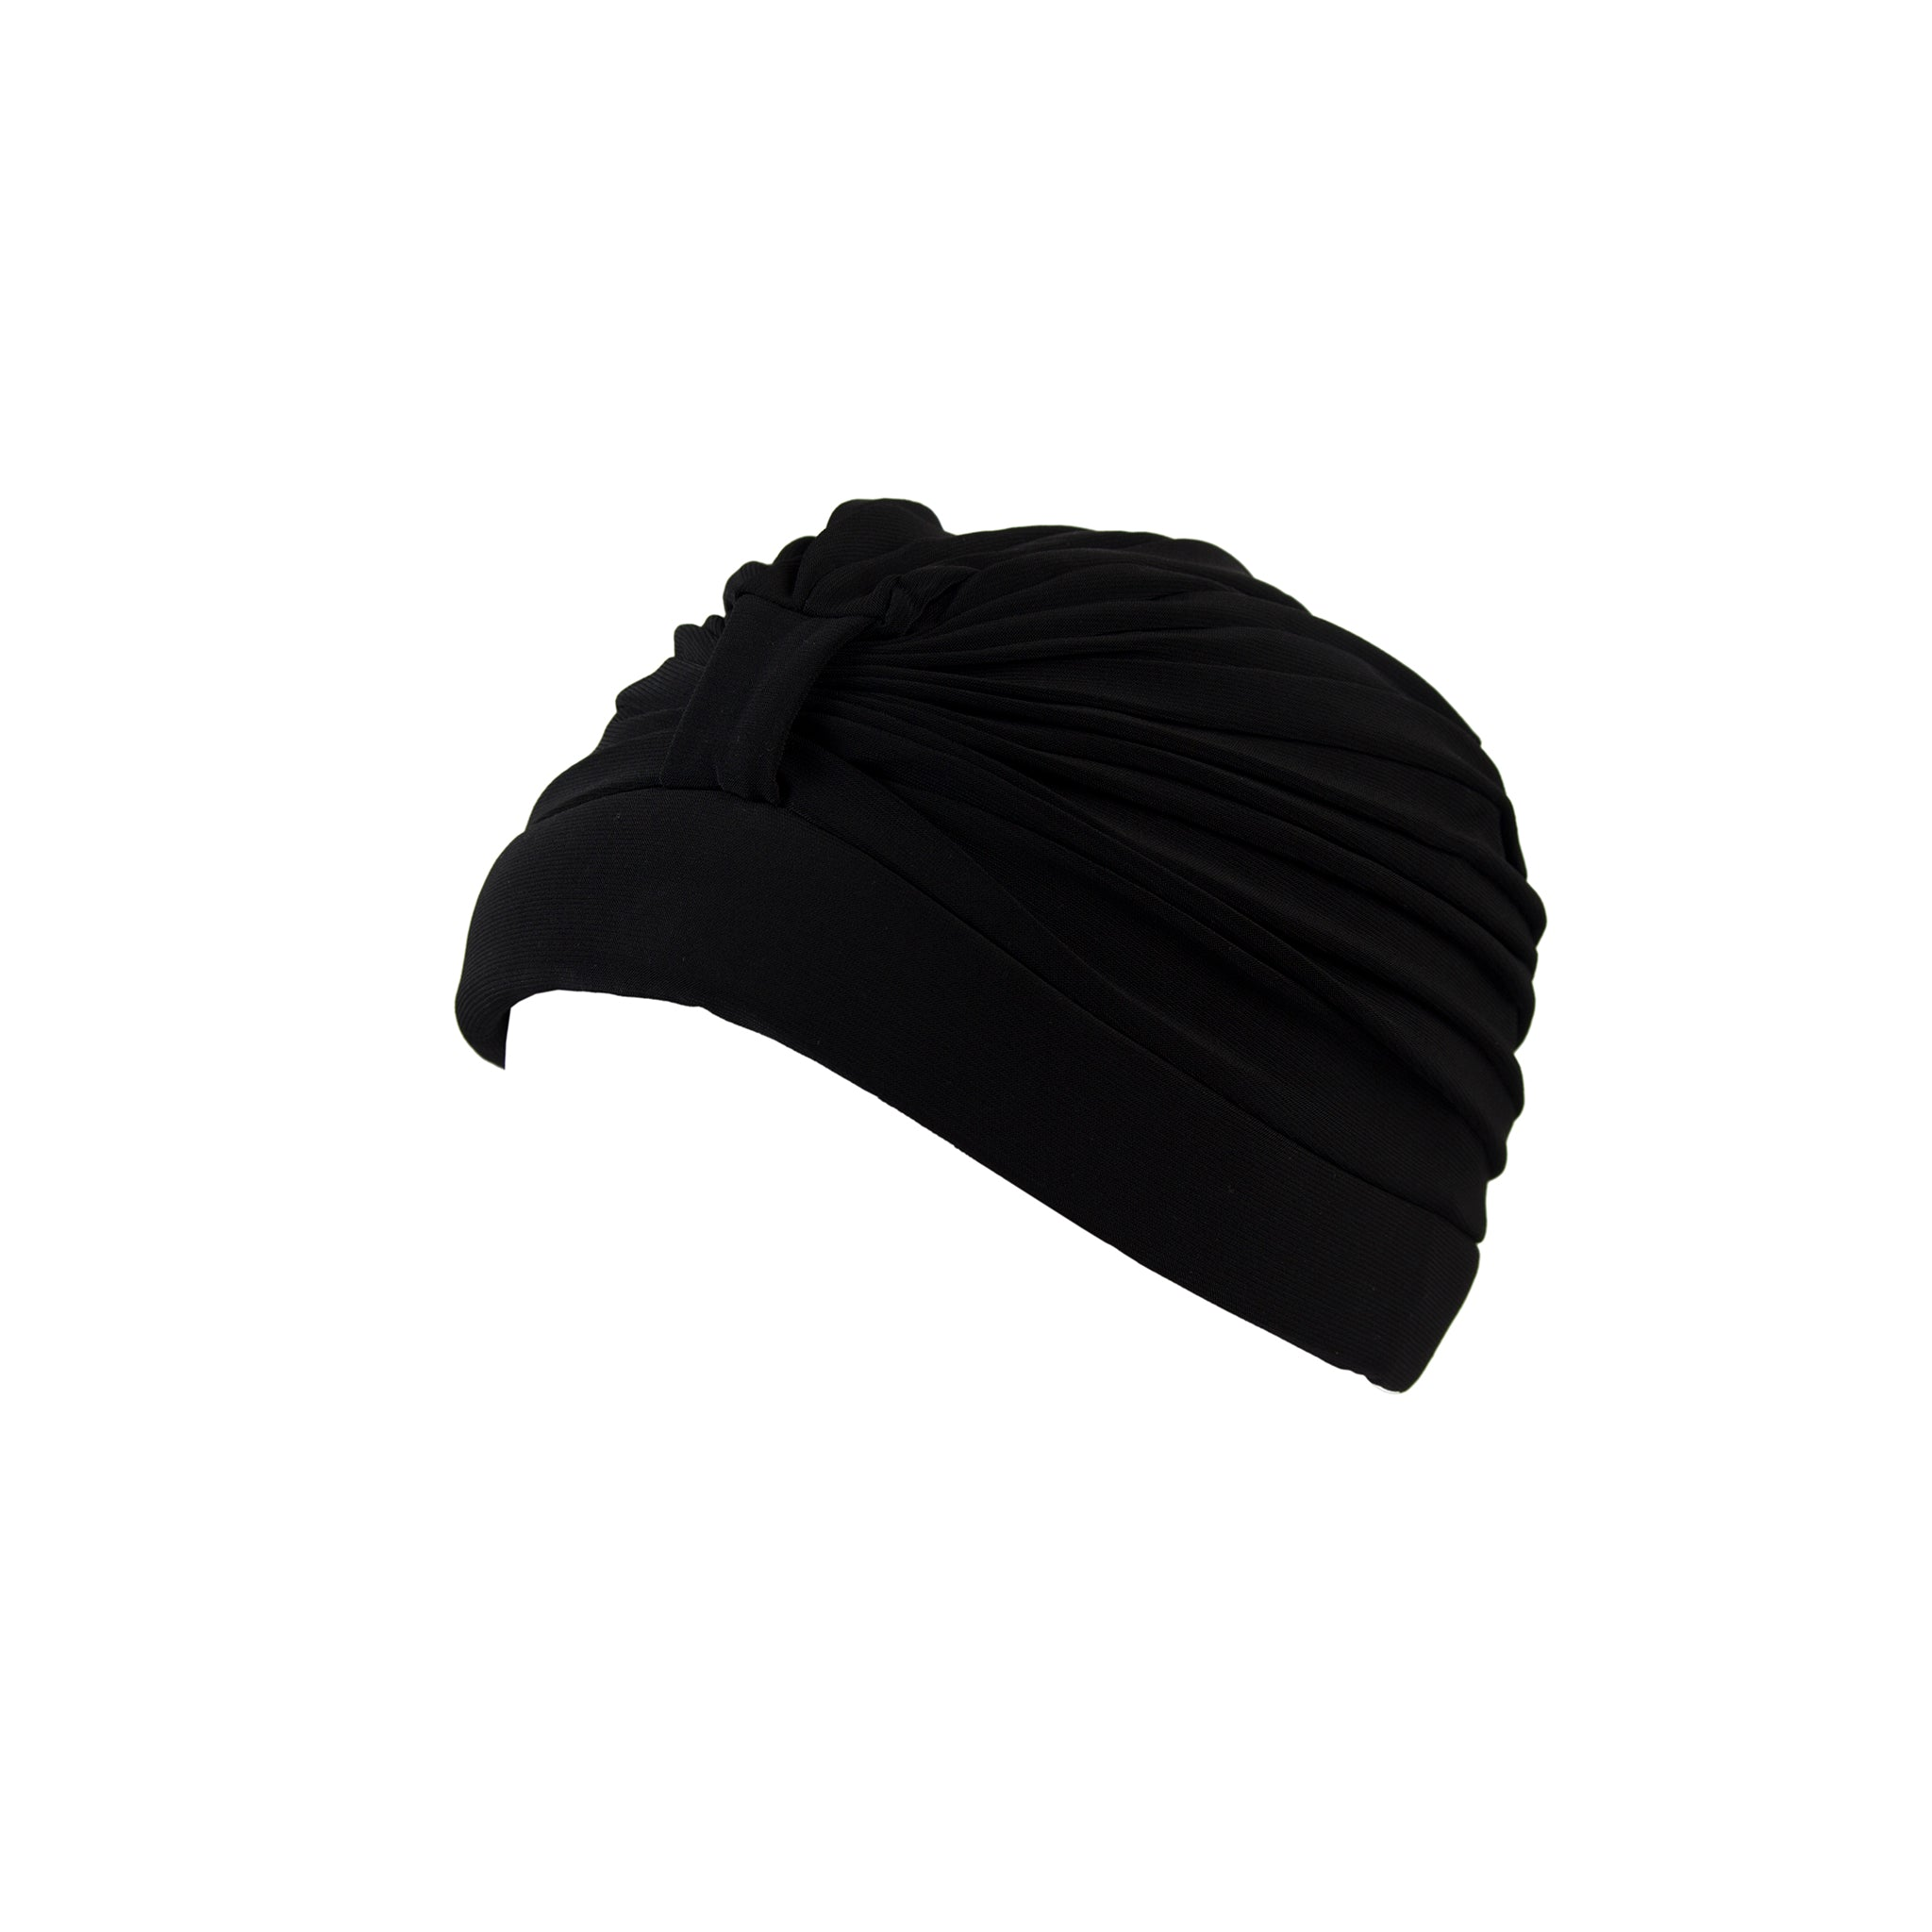 Regular Turban